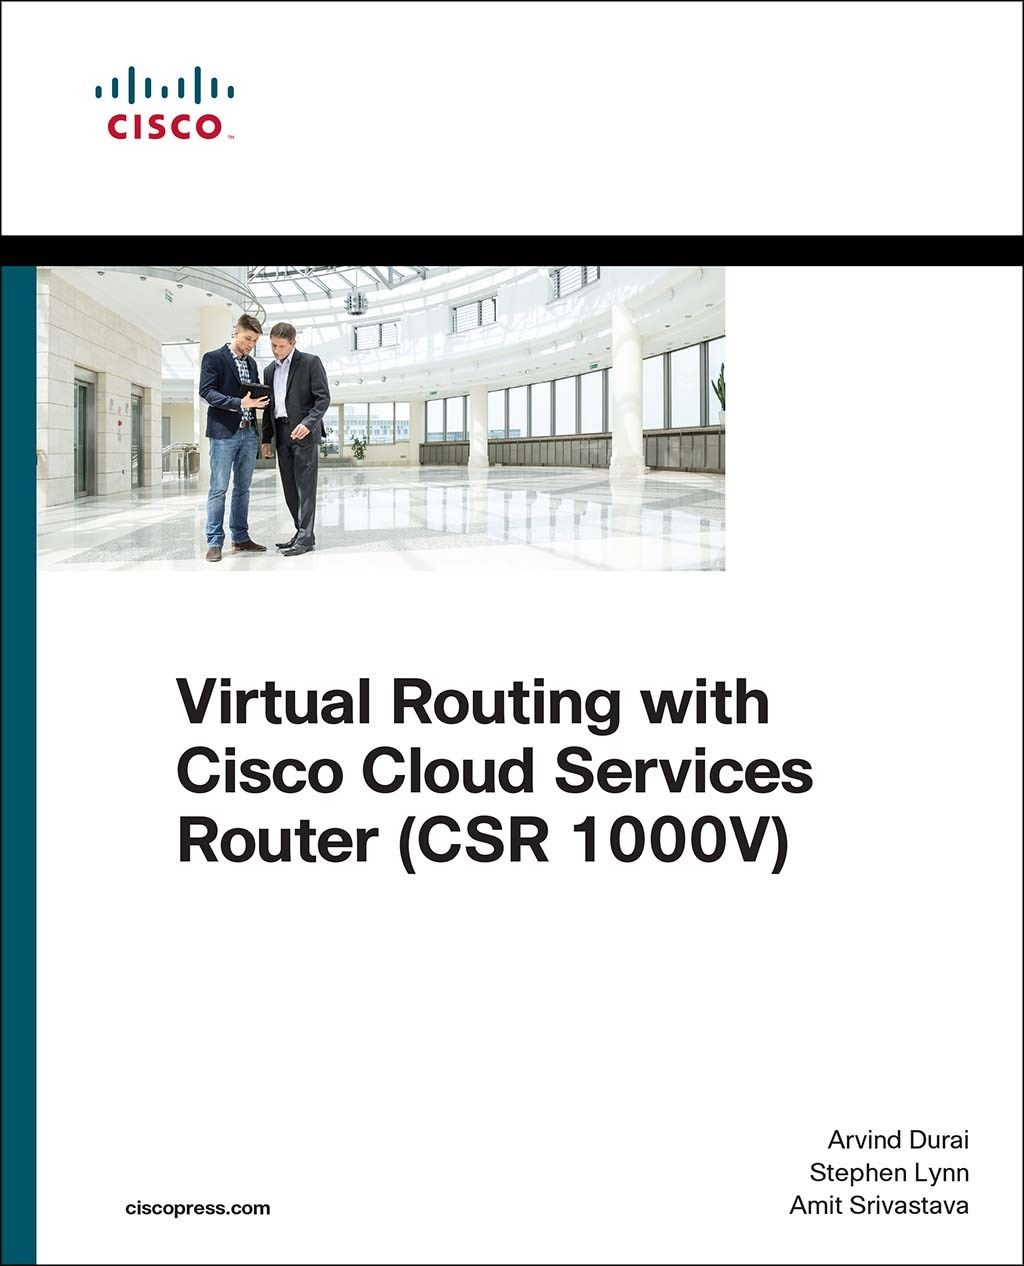 Libro Cisco Get This One On Your Radar Virtual Routing In The Cloud